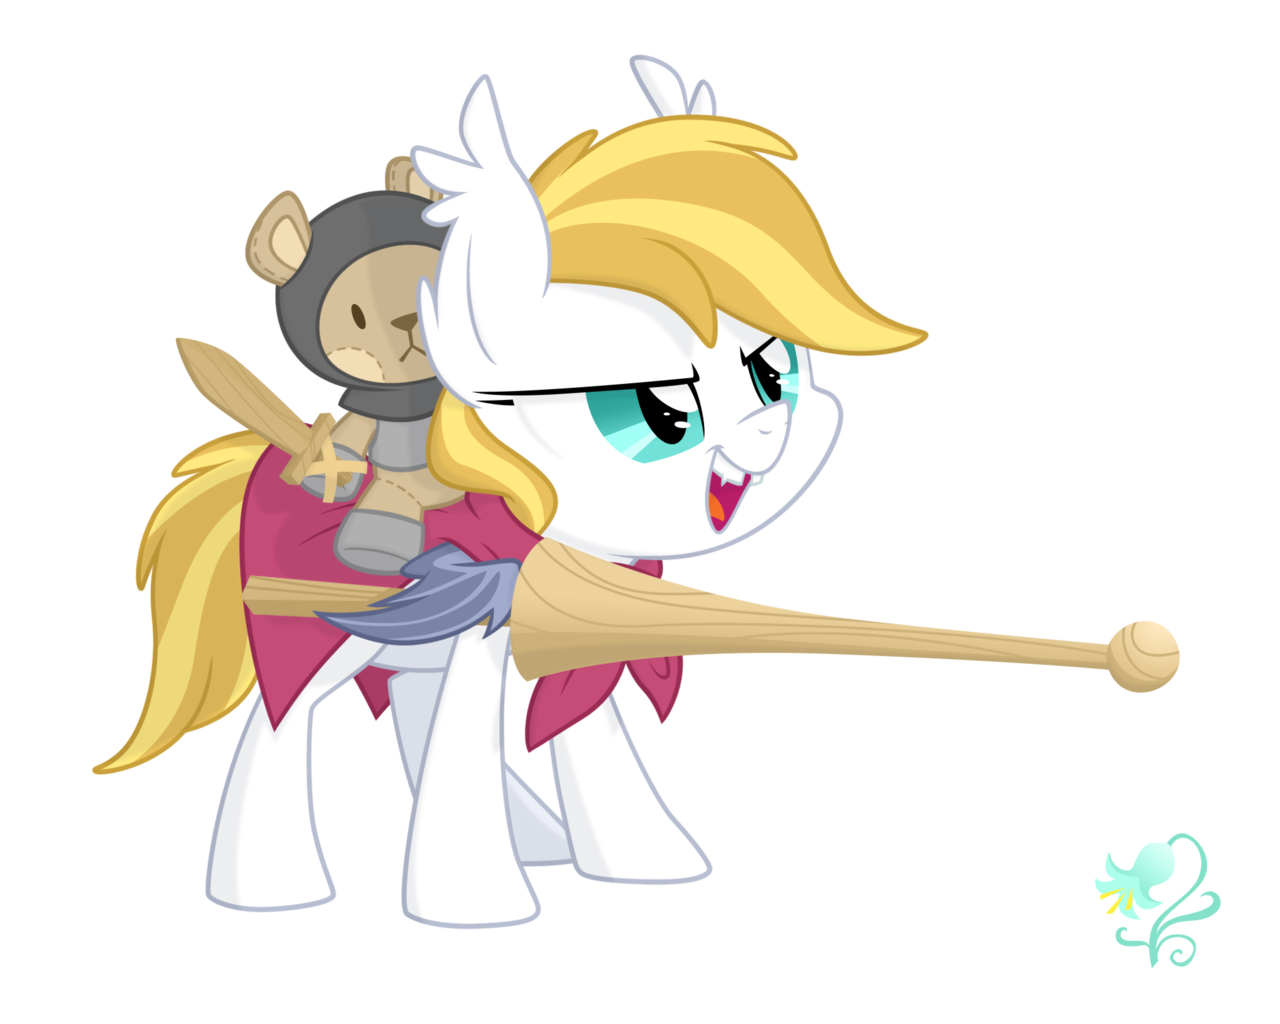 ThePonyArtCollection: Adorable OC Pony